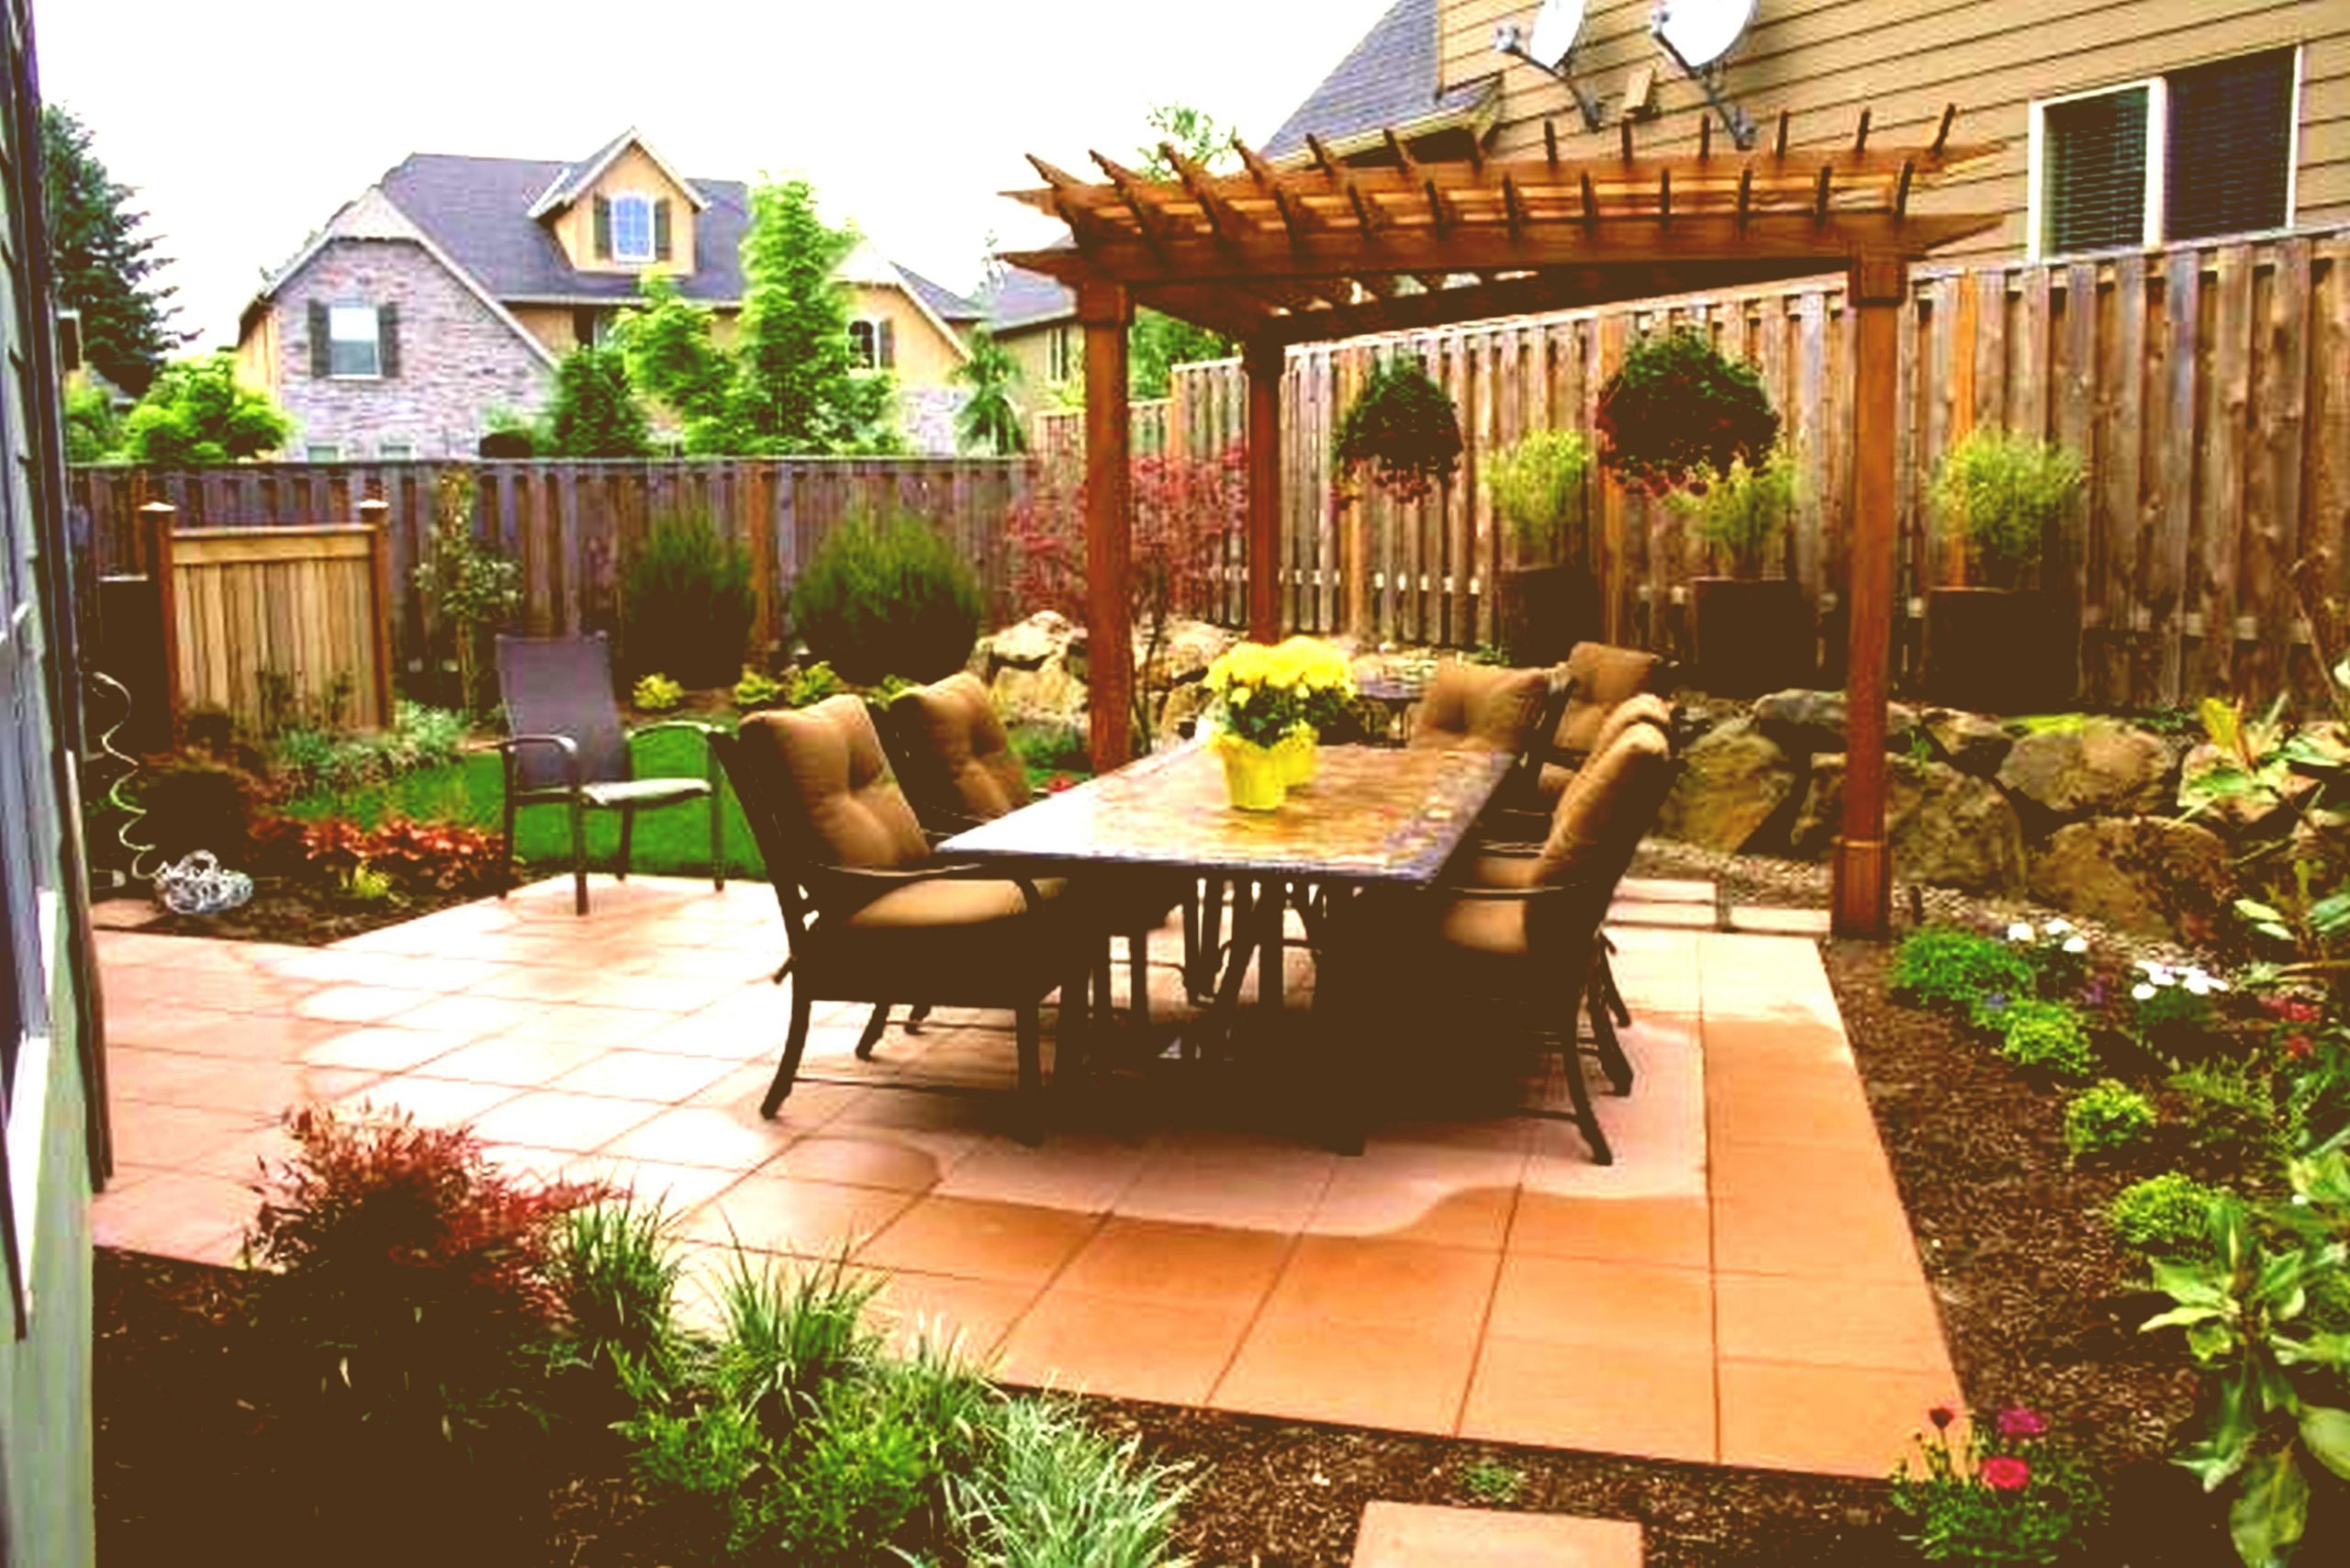 With Cute Patio Stones Crates Design Ceiling Sloped Trel with regard to Home Patio Ideas